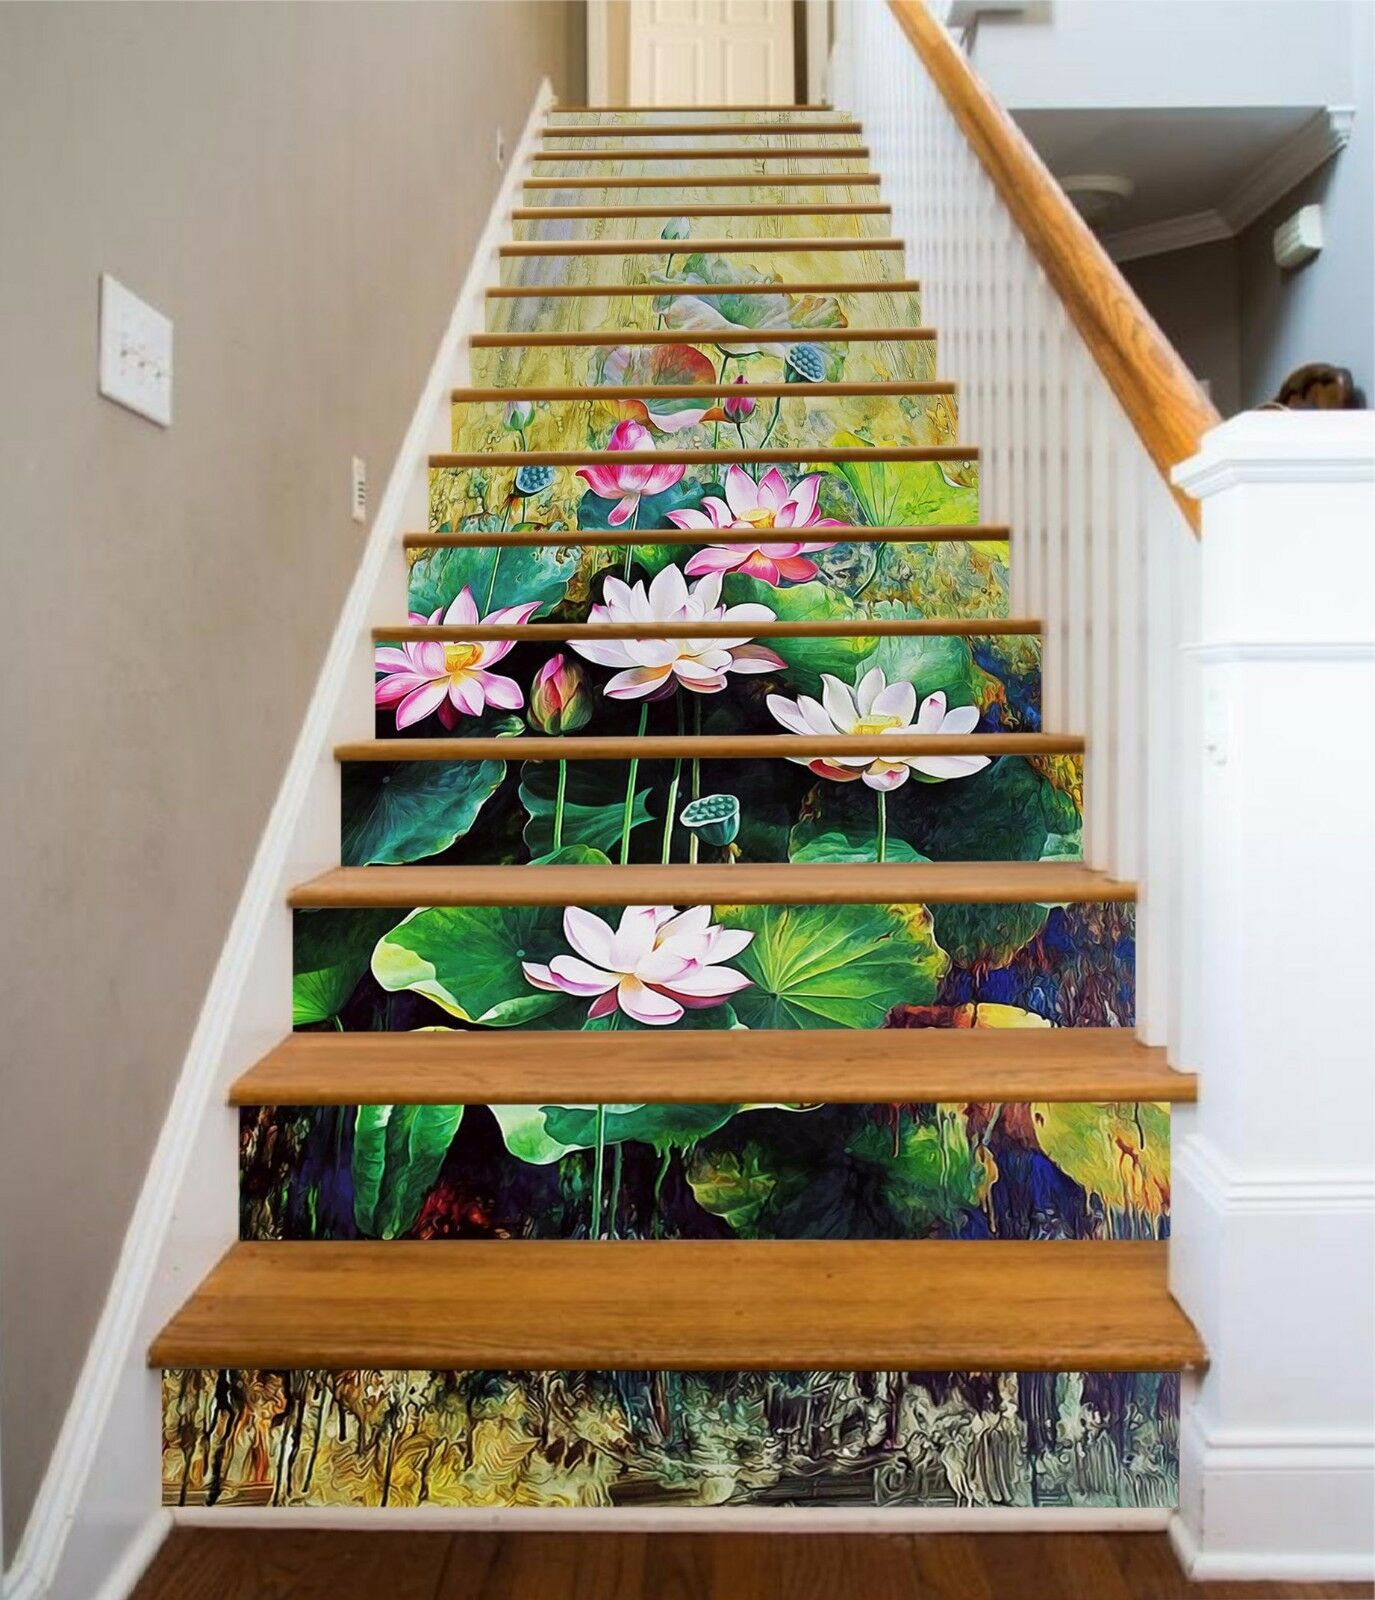 3D Lotus Painting 8 Stair Risers Decoration Photo Mural Vinyl Decal Wallpaper AU